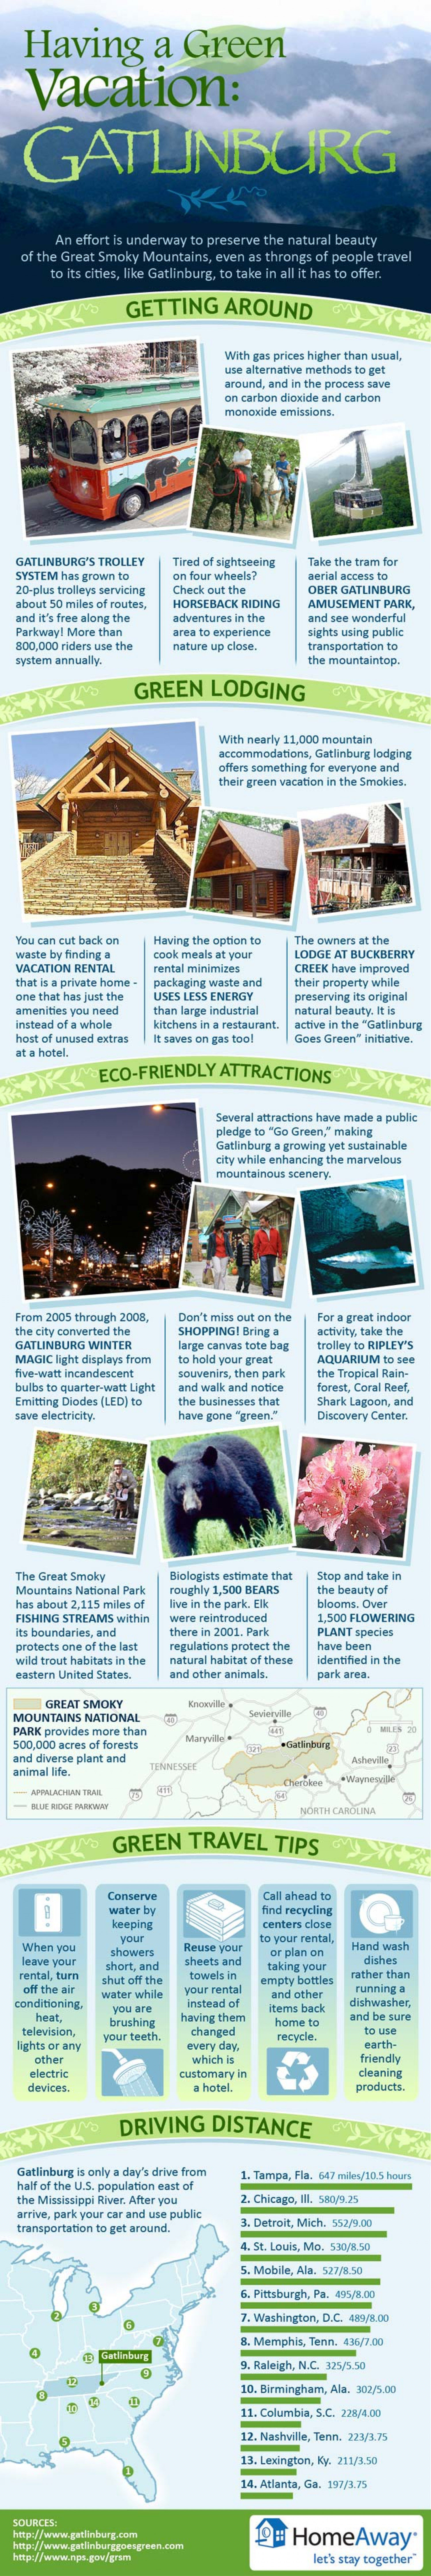 Have a Green Vacation Infographic